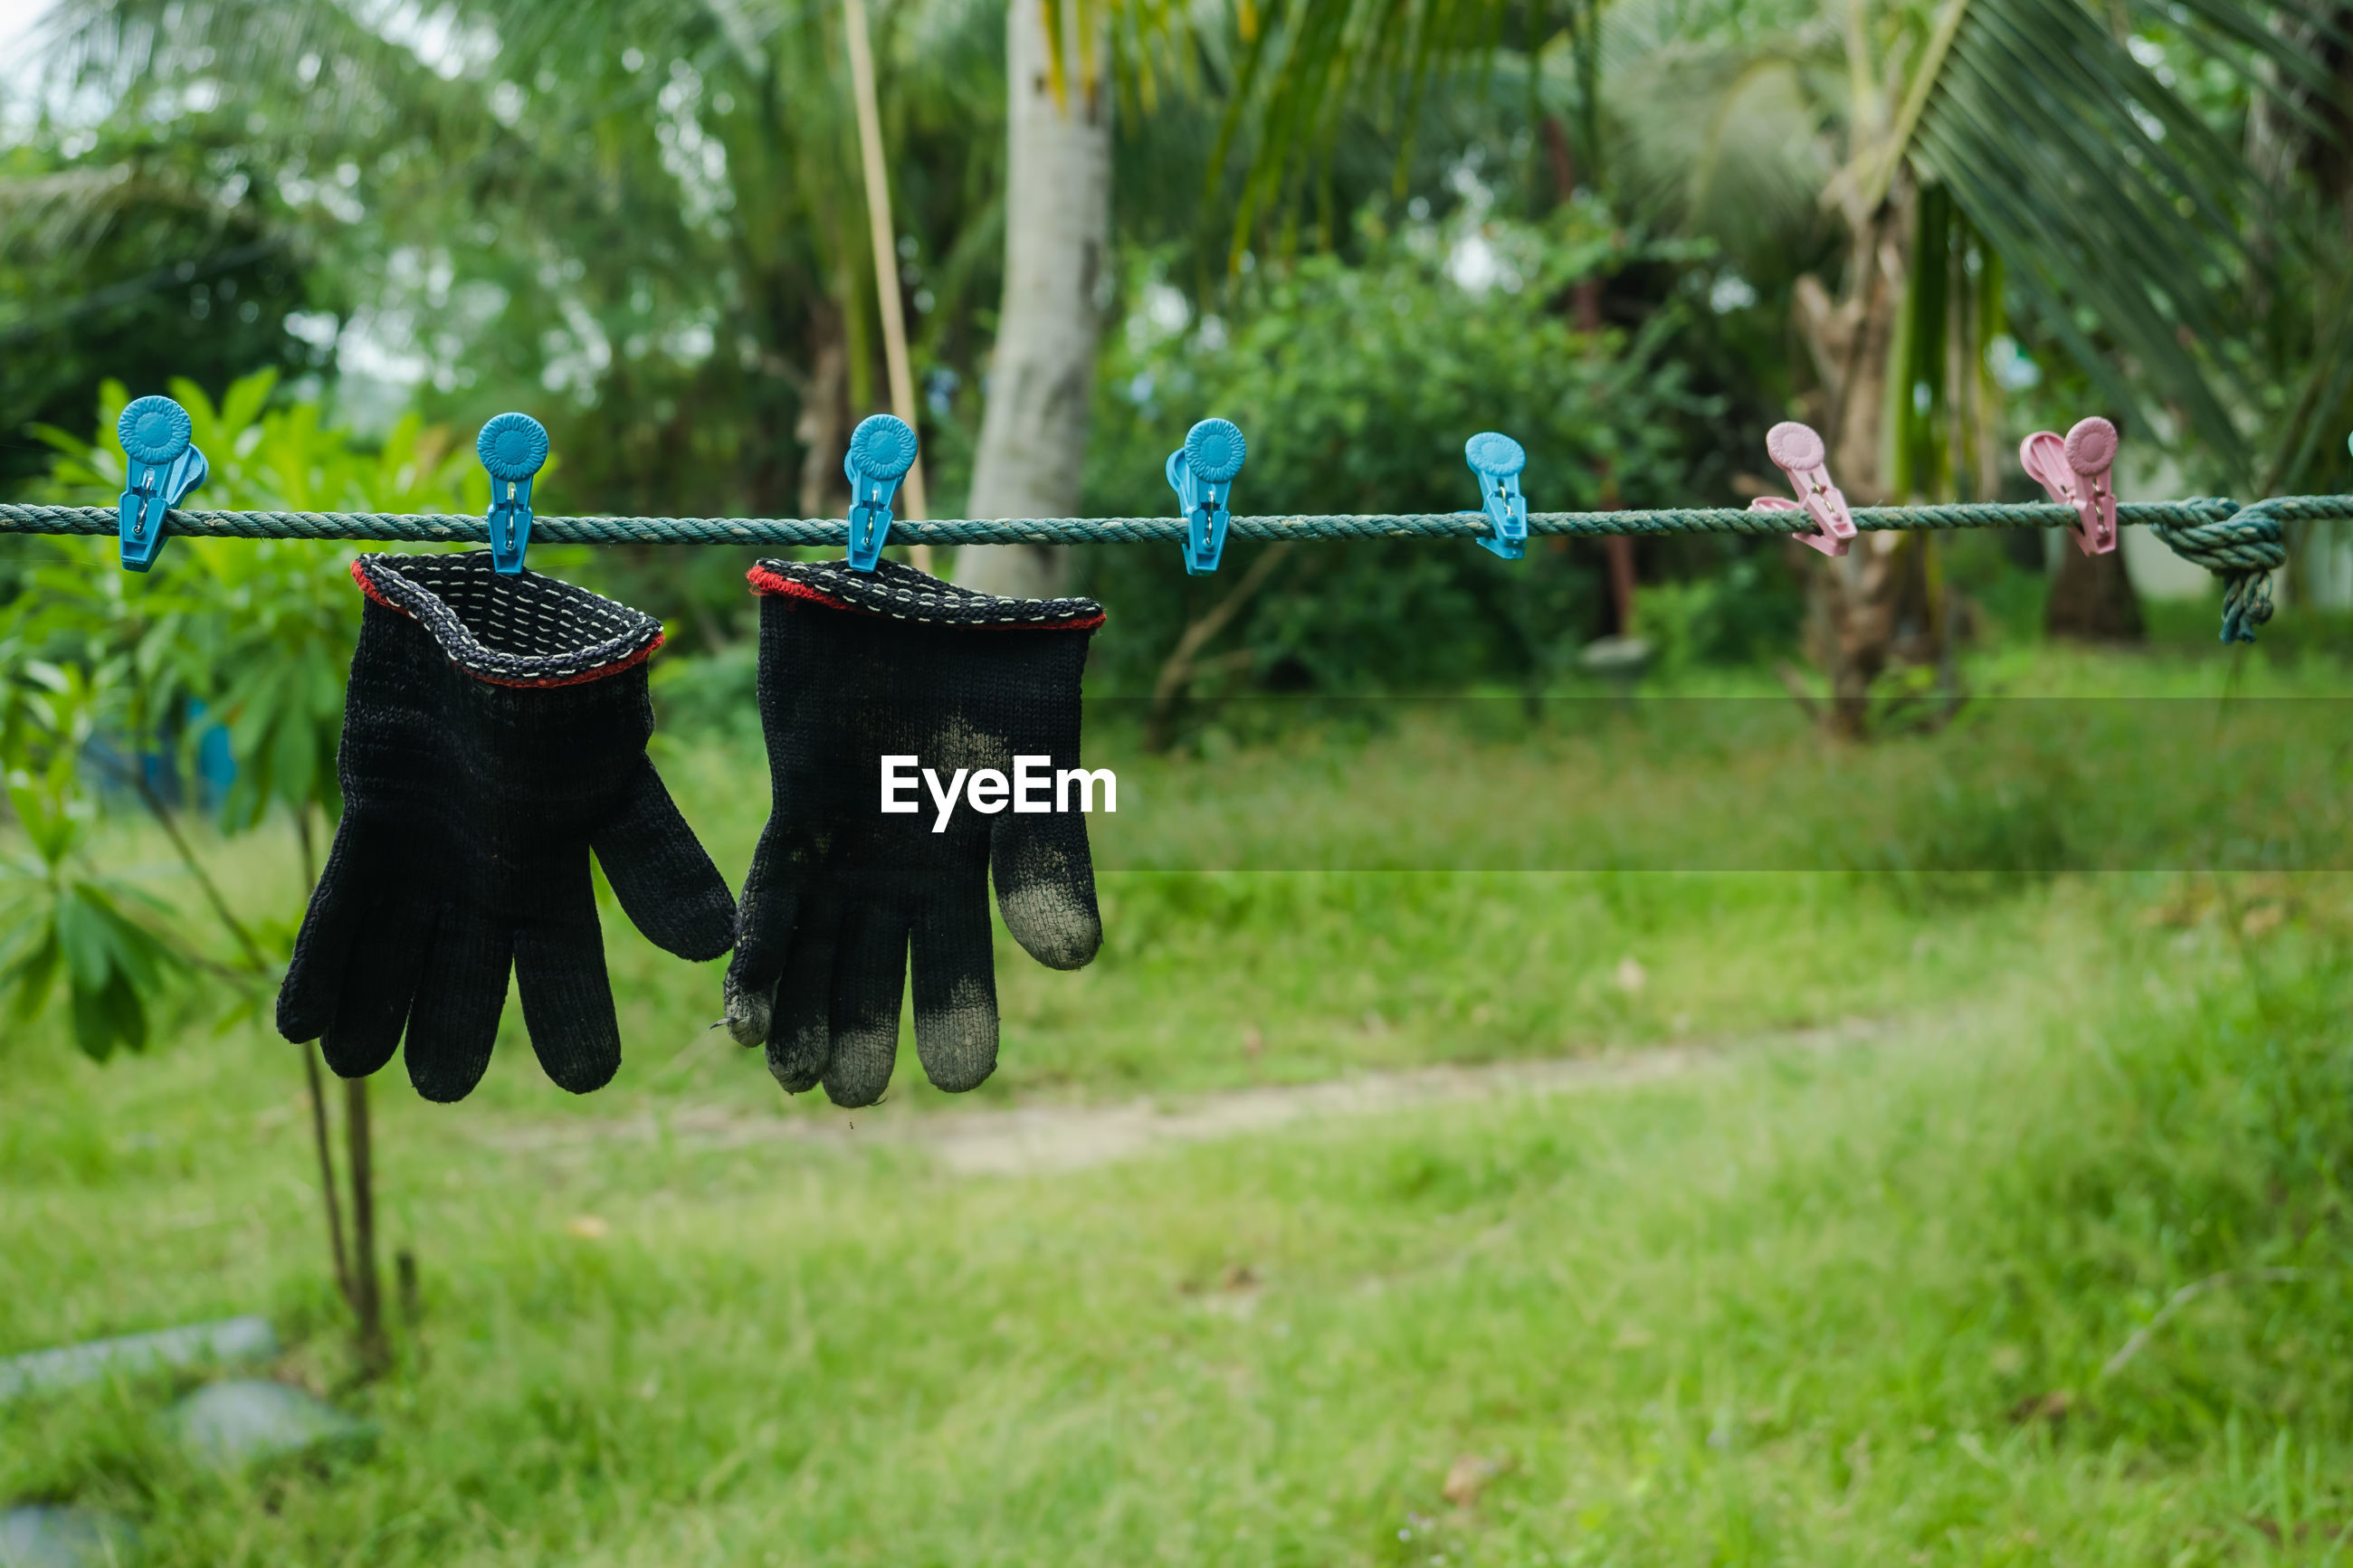 CLOTHES HANGING ON CLOTHESLINE BY TREES